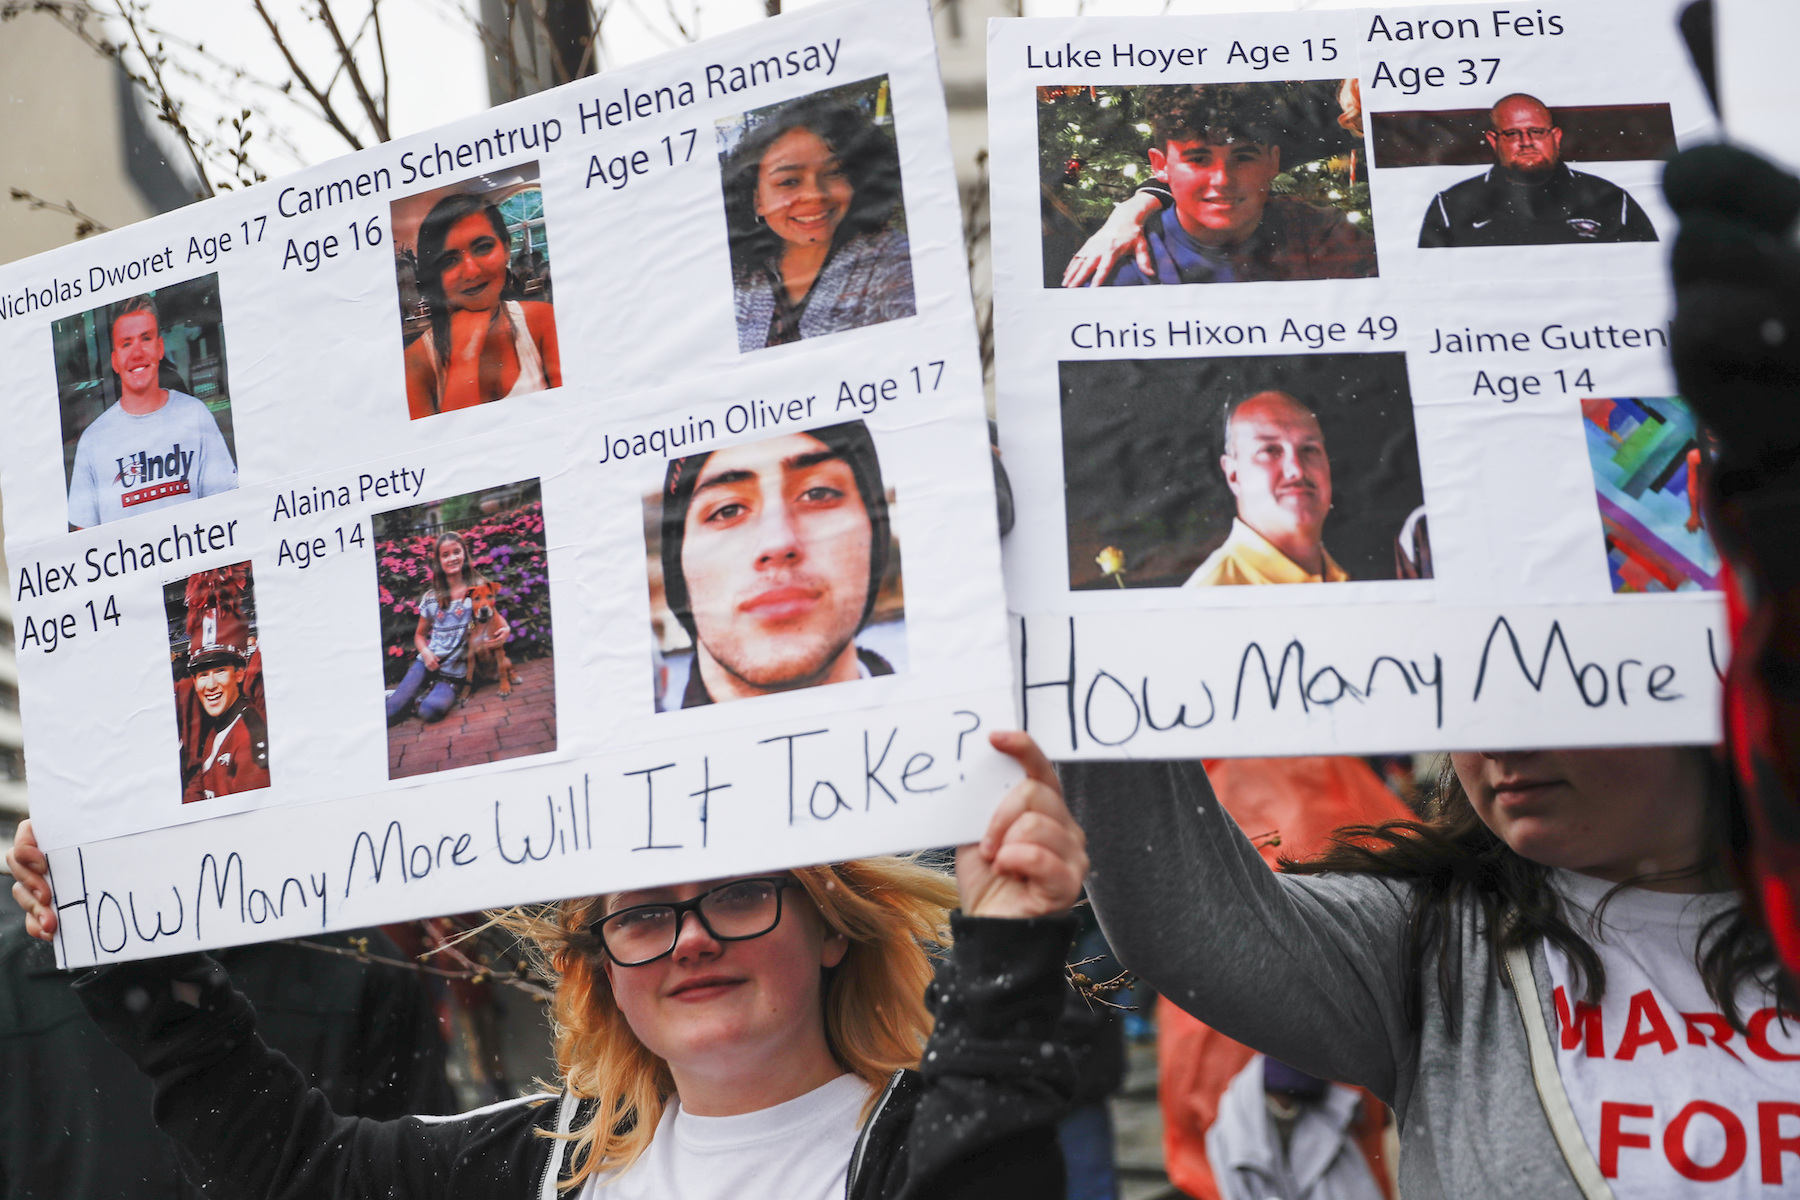 "<div class=""meta image-caption""><div class=""origin-logo origin-image ap""><span>AP</span></div><span class=""caption-text"">Shelby Powell, 15, of Newport High School, holds a sign depicting lives lost in school shootings during the March for Our Lives protest in Cincinnati. (AP Photo/John Minchillo)</span></div>"